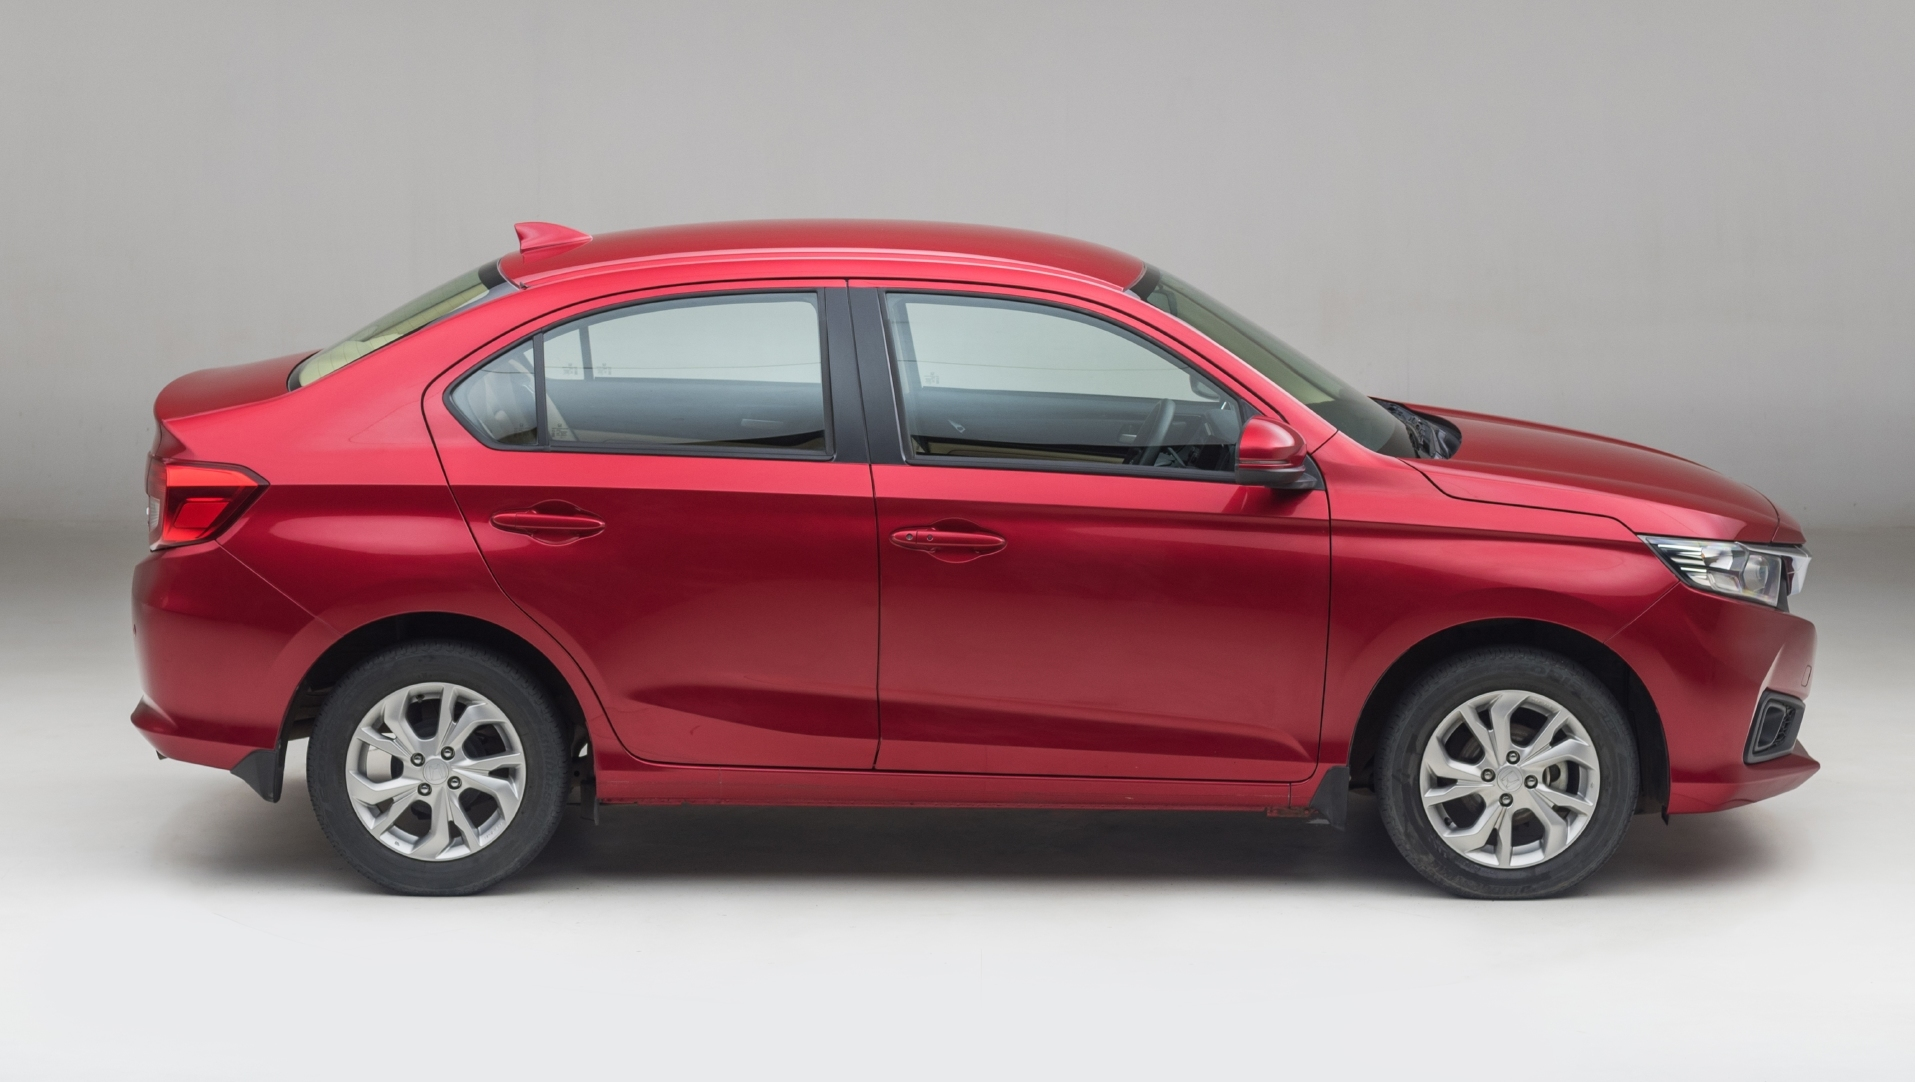 10 Top Cars For Road Trips In India In 2021 Model And Prices